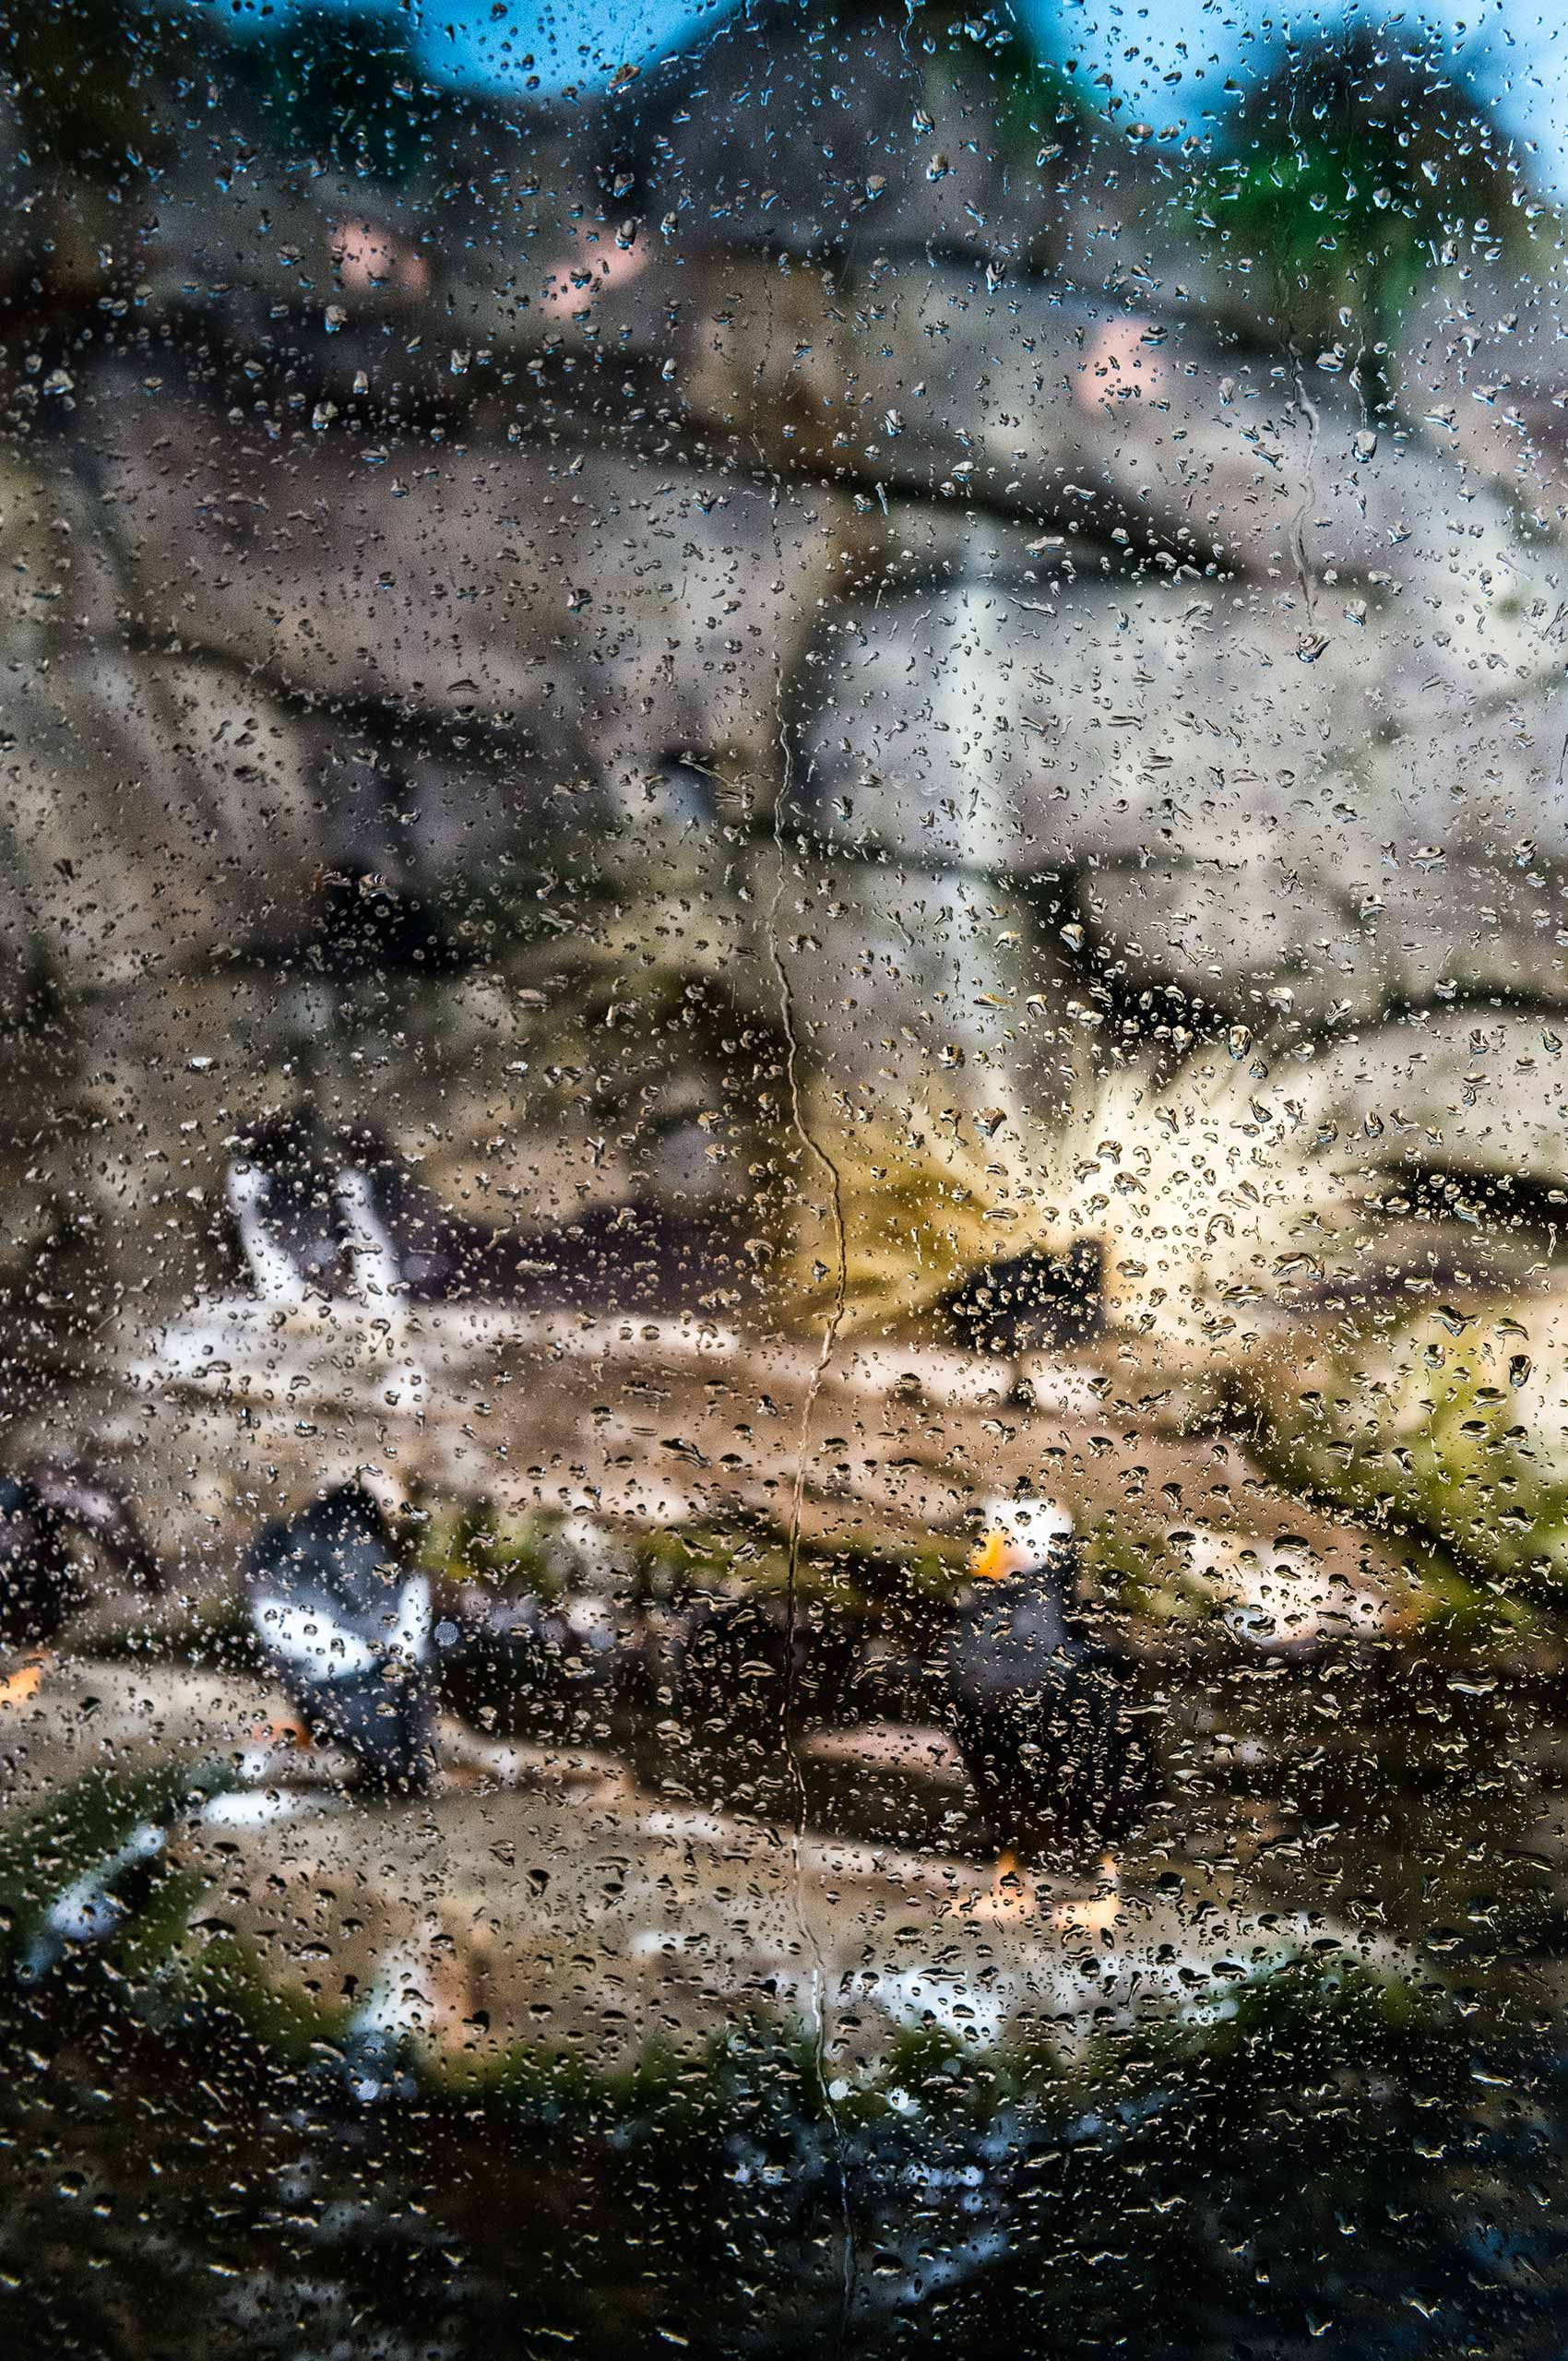 Penguins-Drops-Window-HenrikOlundPhotography.jpg